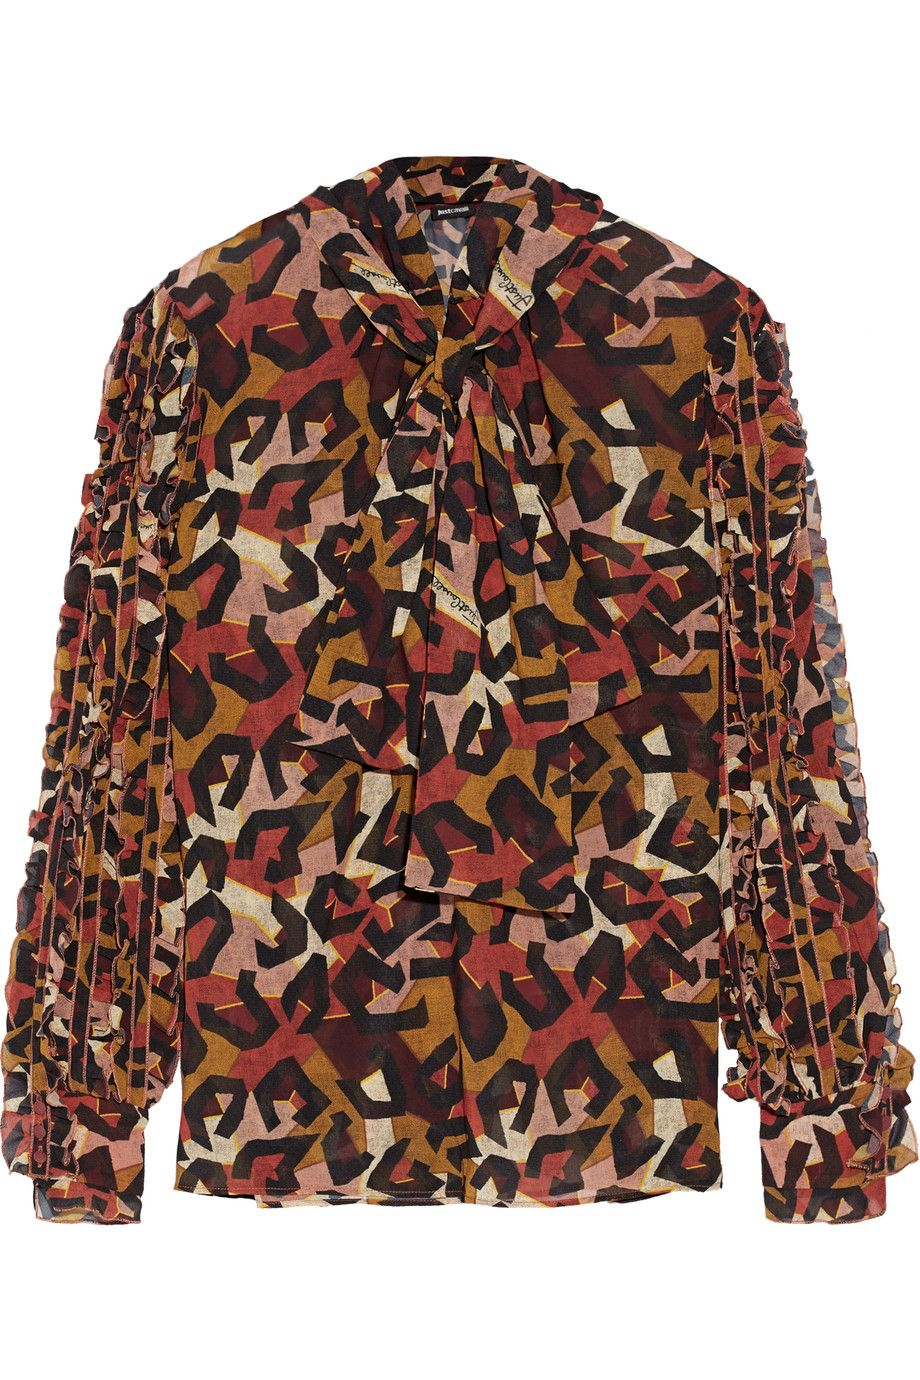 Just Cavalli Woman Ruffle-trimmed Printed Chiffon Top Black Size 40 Just Cavalli New Fashion Style Of Wiki Online Authentic Cheap Online Cheap Sale Latest 9OOy0P